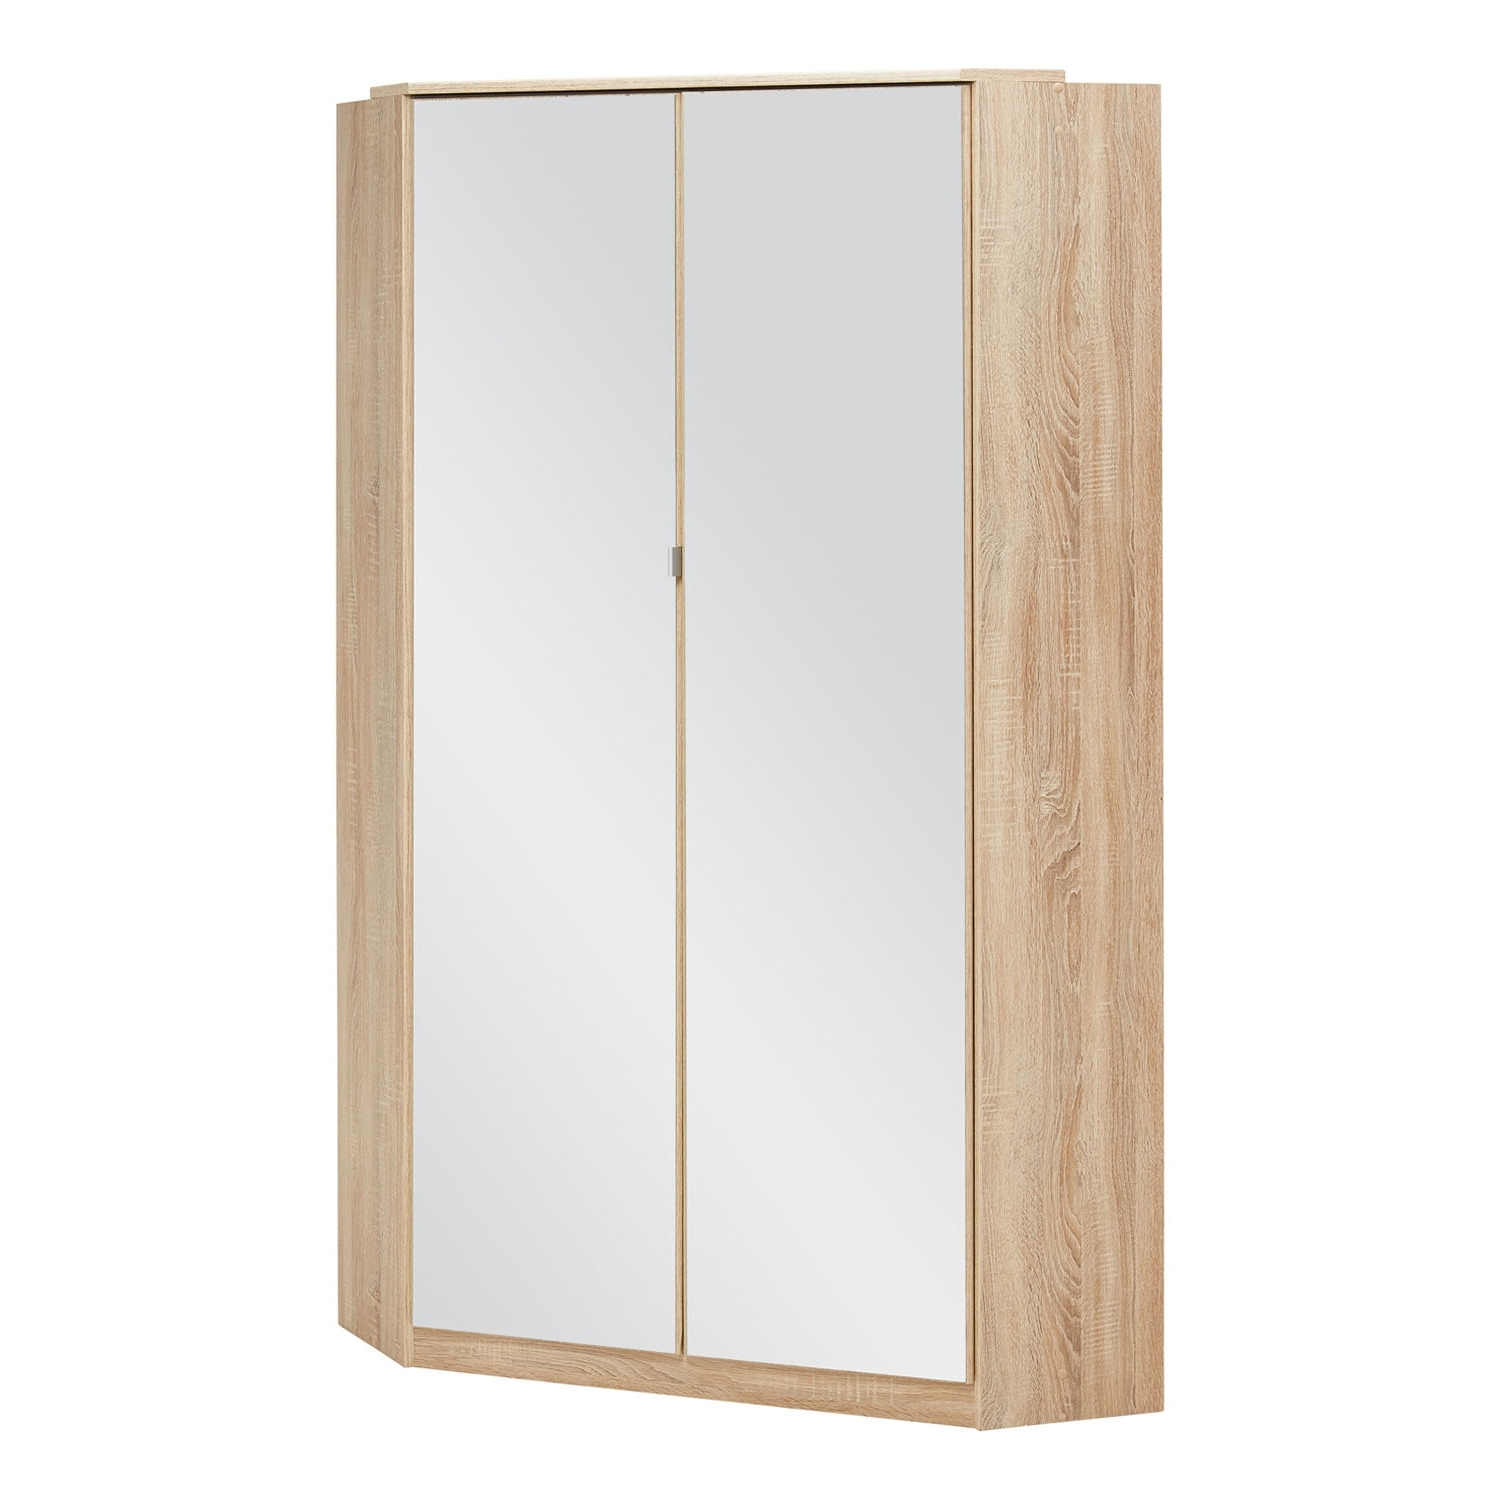 Gamma Oak And White Gloss Corner Wardrobe – Next Day Delivery Intended For 2017 White Gloss Corner Wardrobes (View 4 of 15)